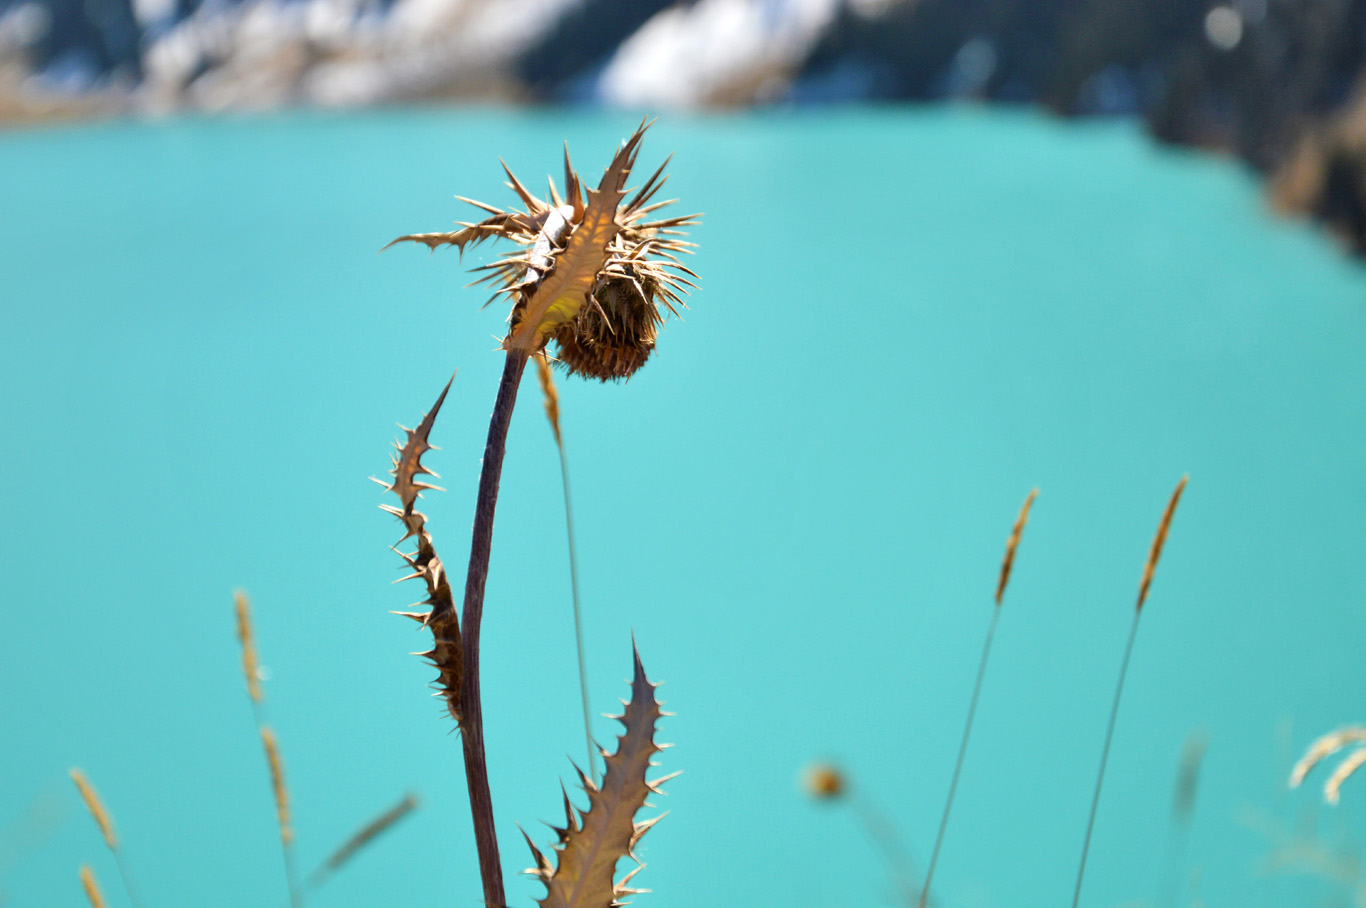 A dry thistle contrasting with the deep blue color